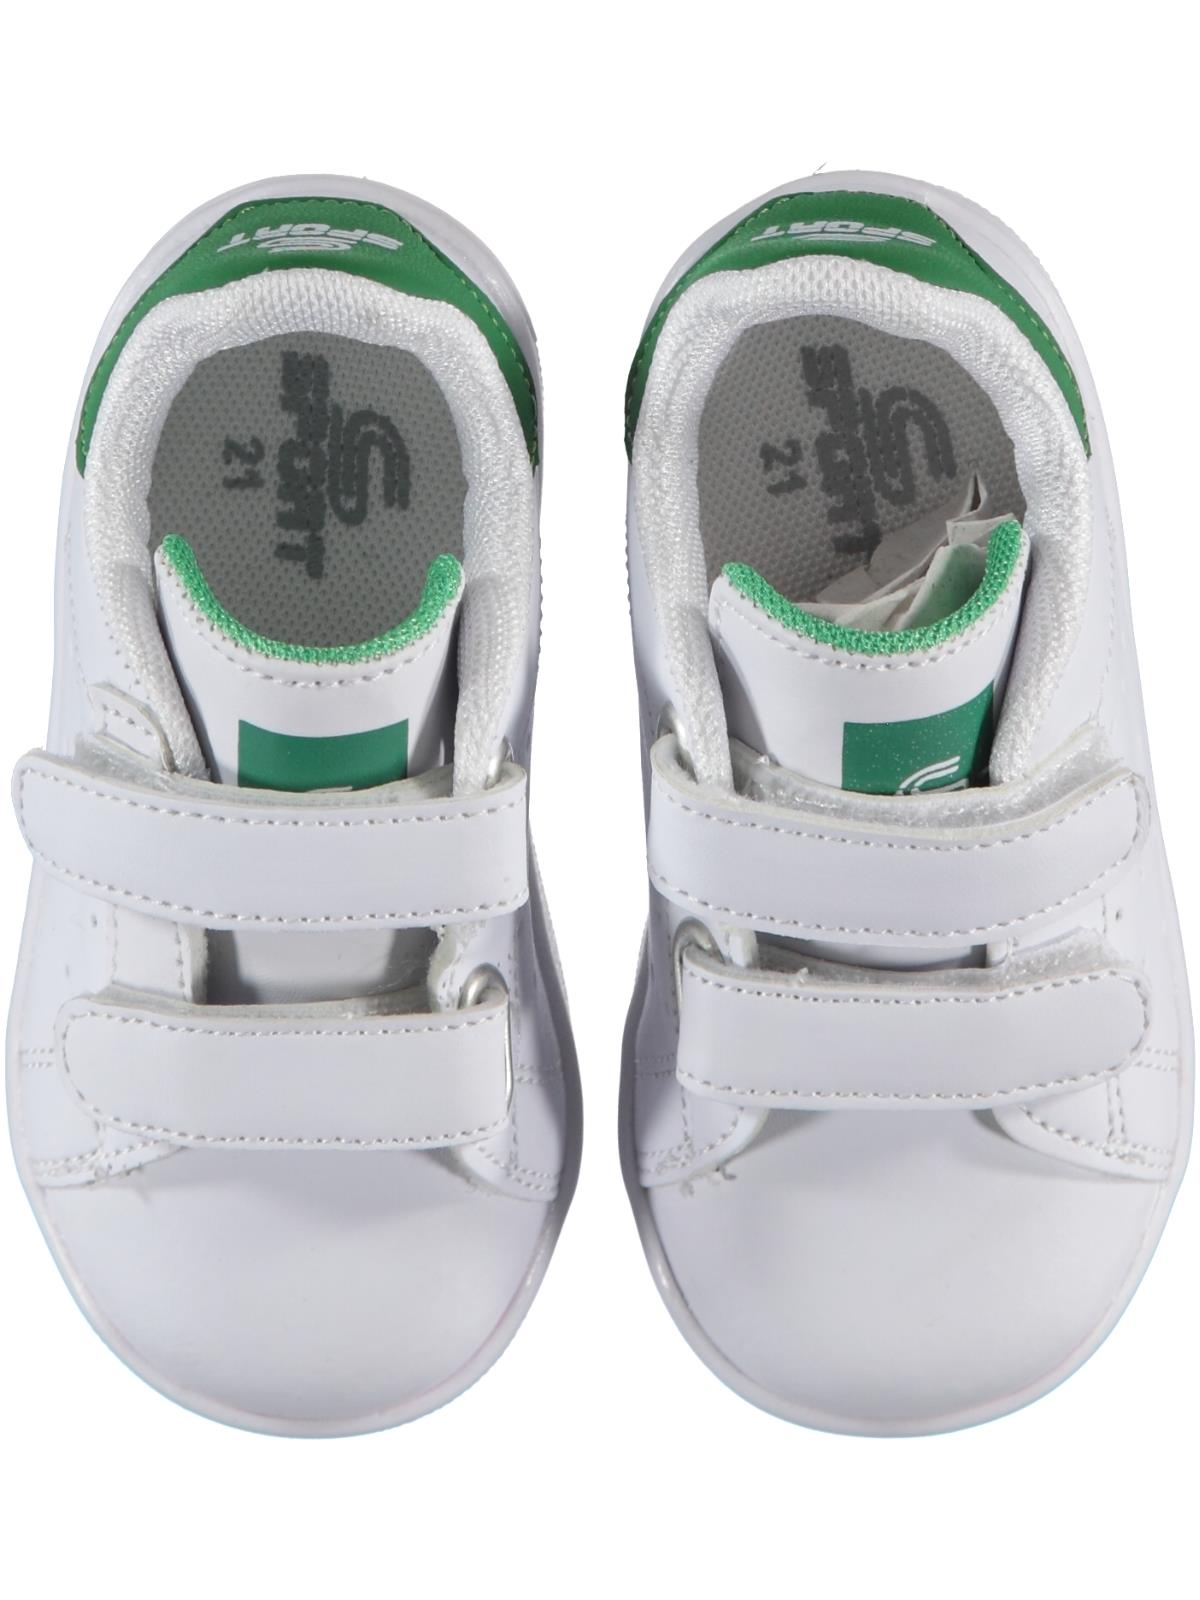 Sport Baby Boy White Sneakers 21-25 Number